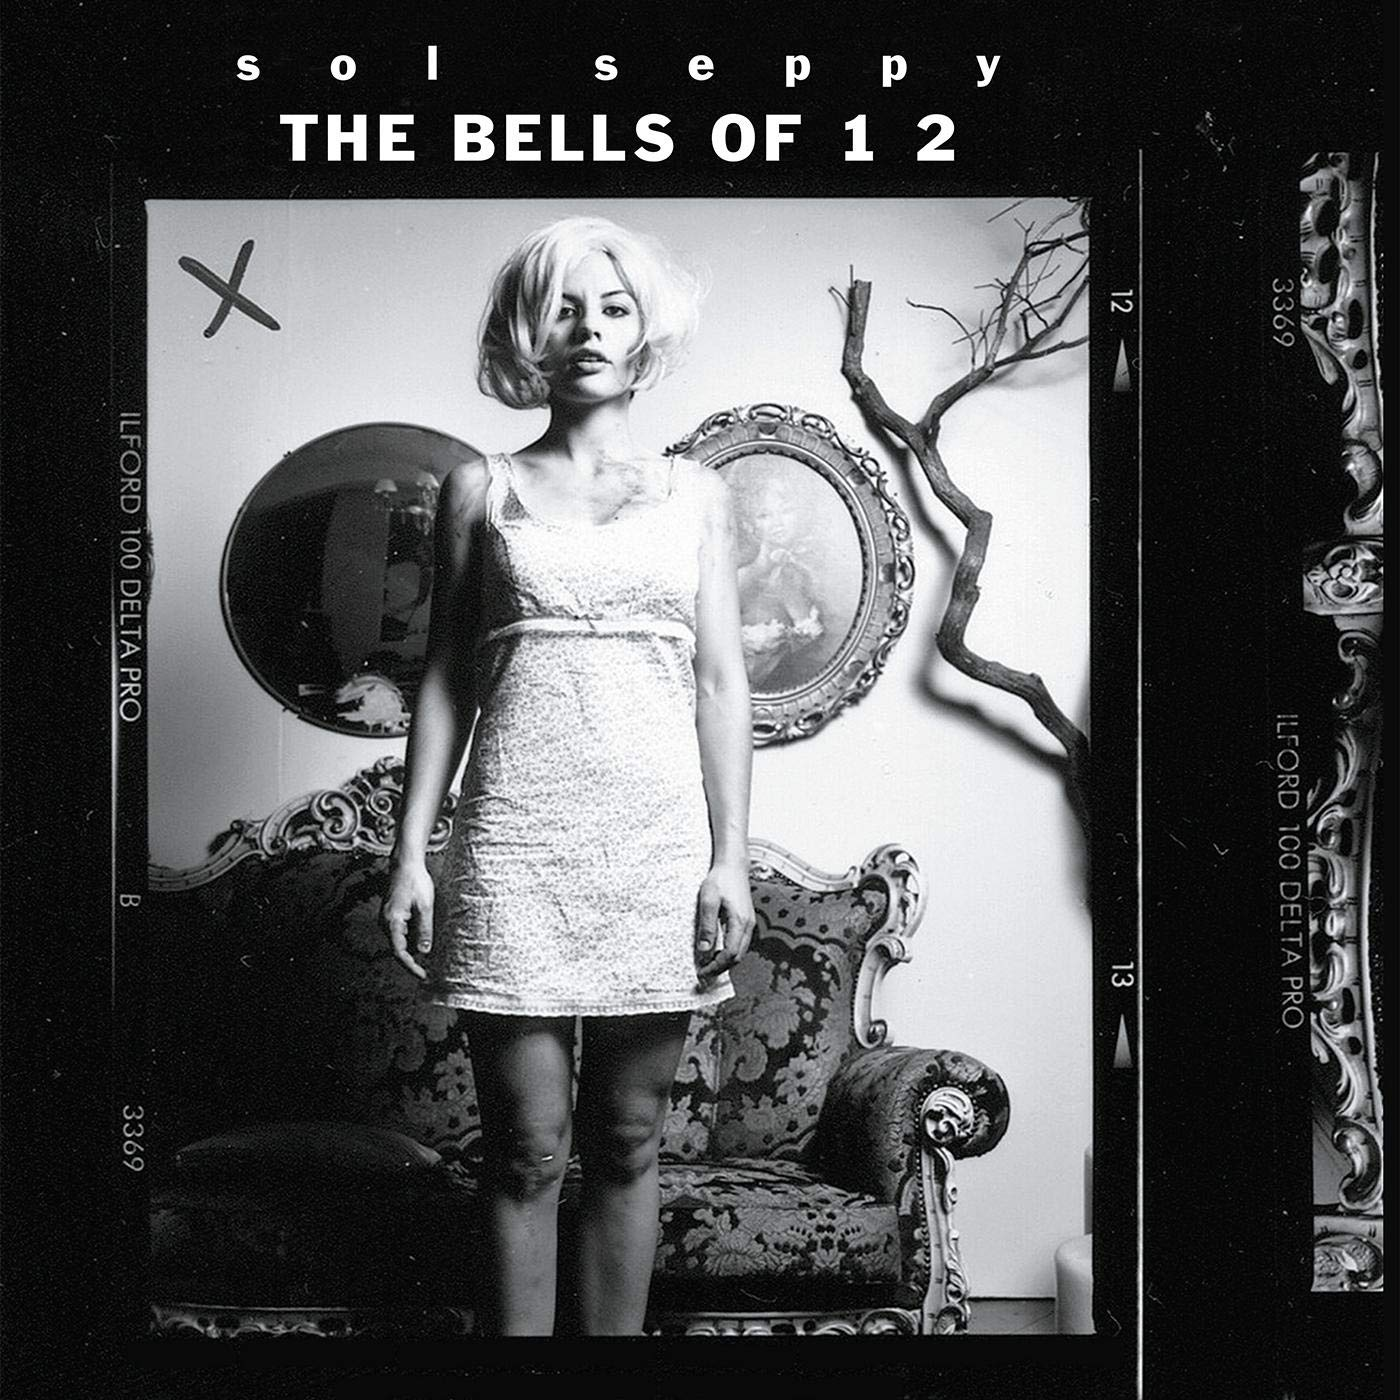 The Bells of 10